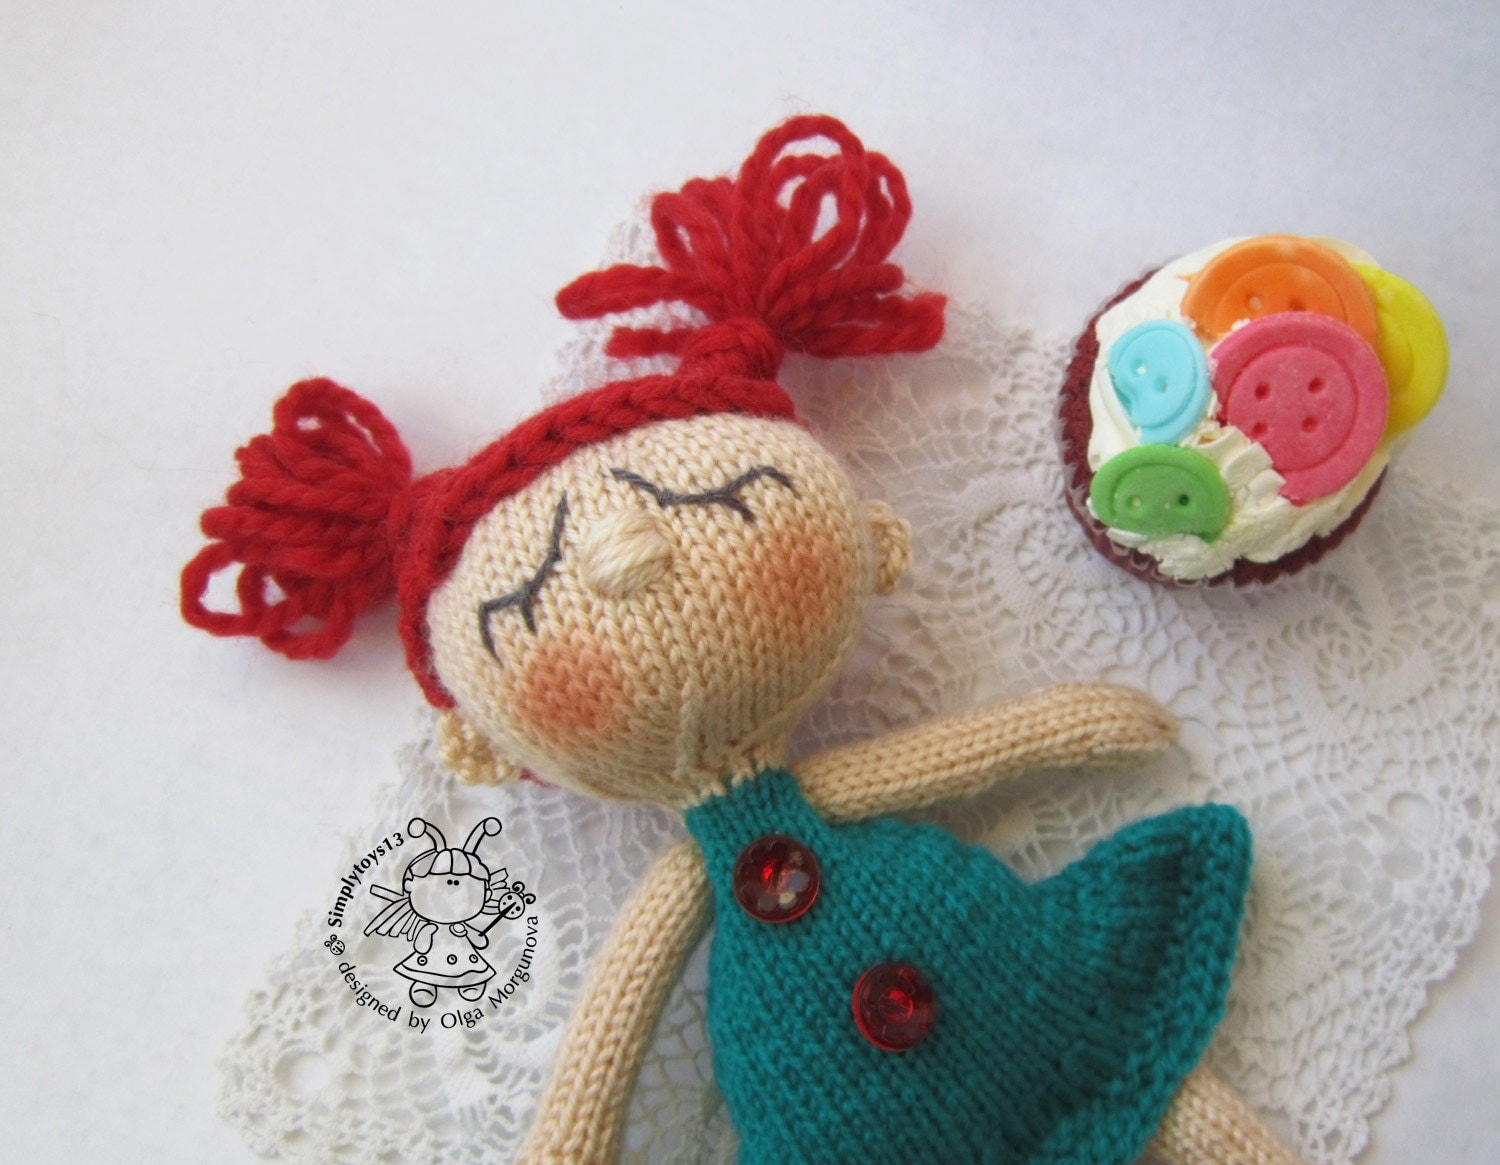 Sheep Amigurumi Crochet Pattern : Toy for sleep. Doll for small babies- knitting pattern ...